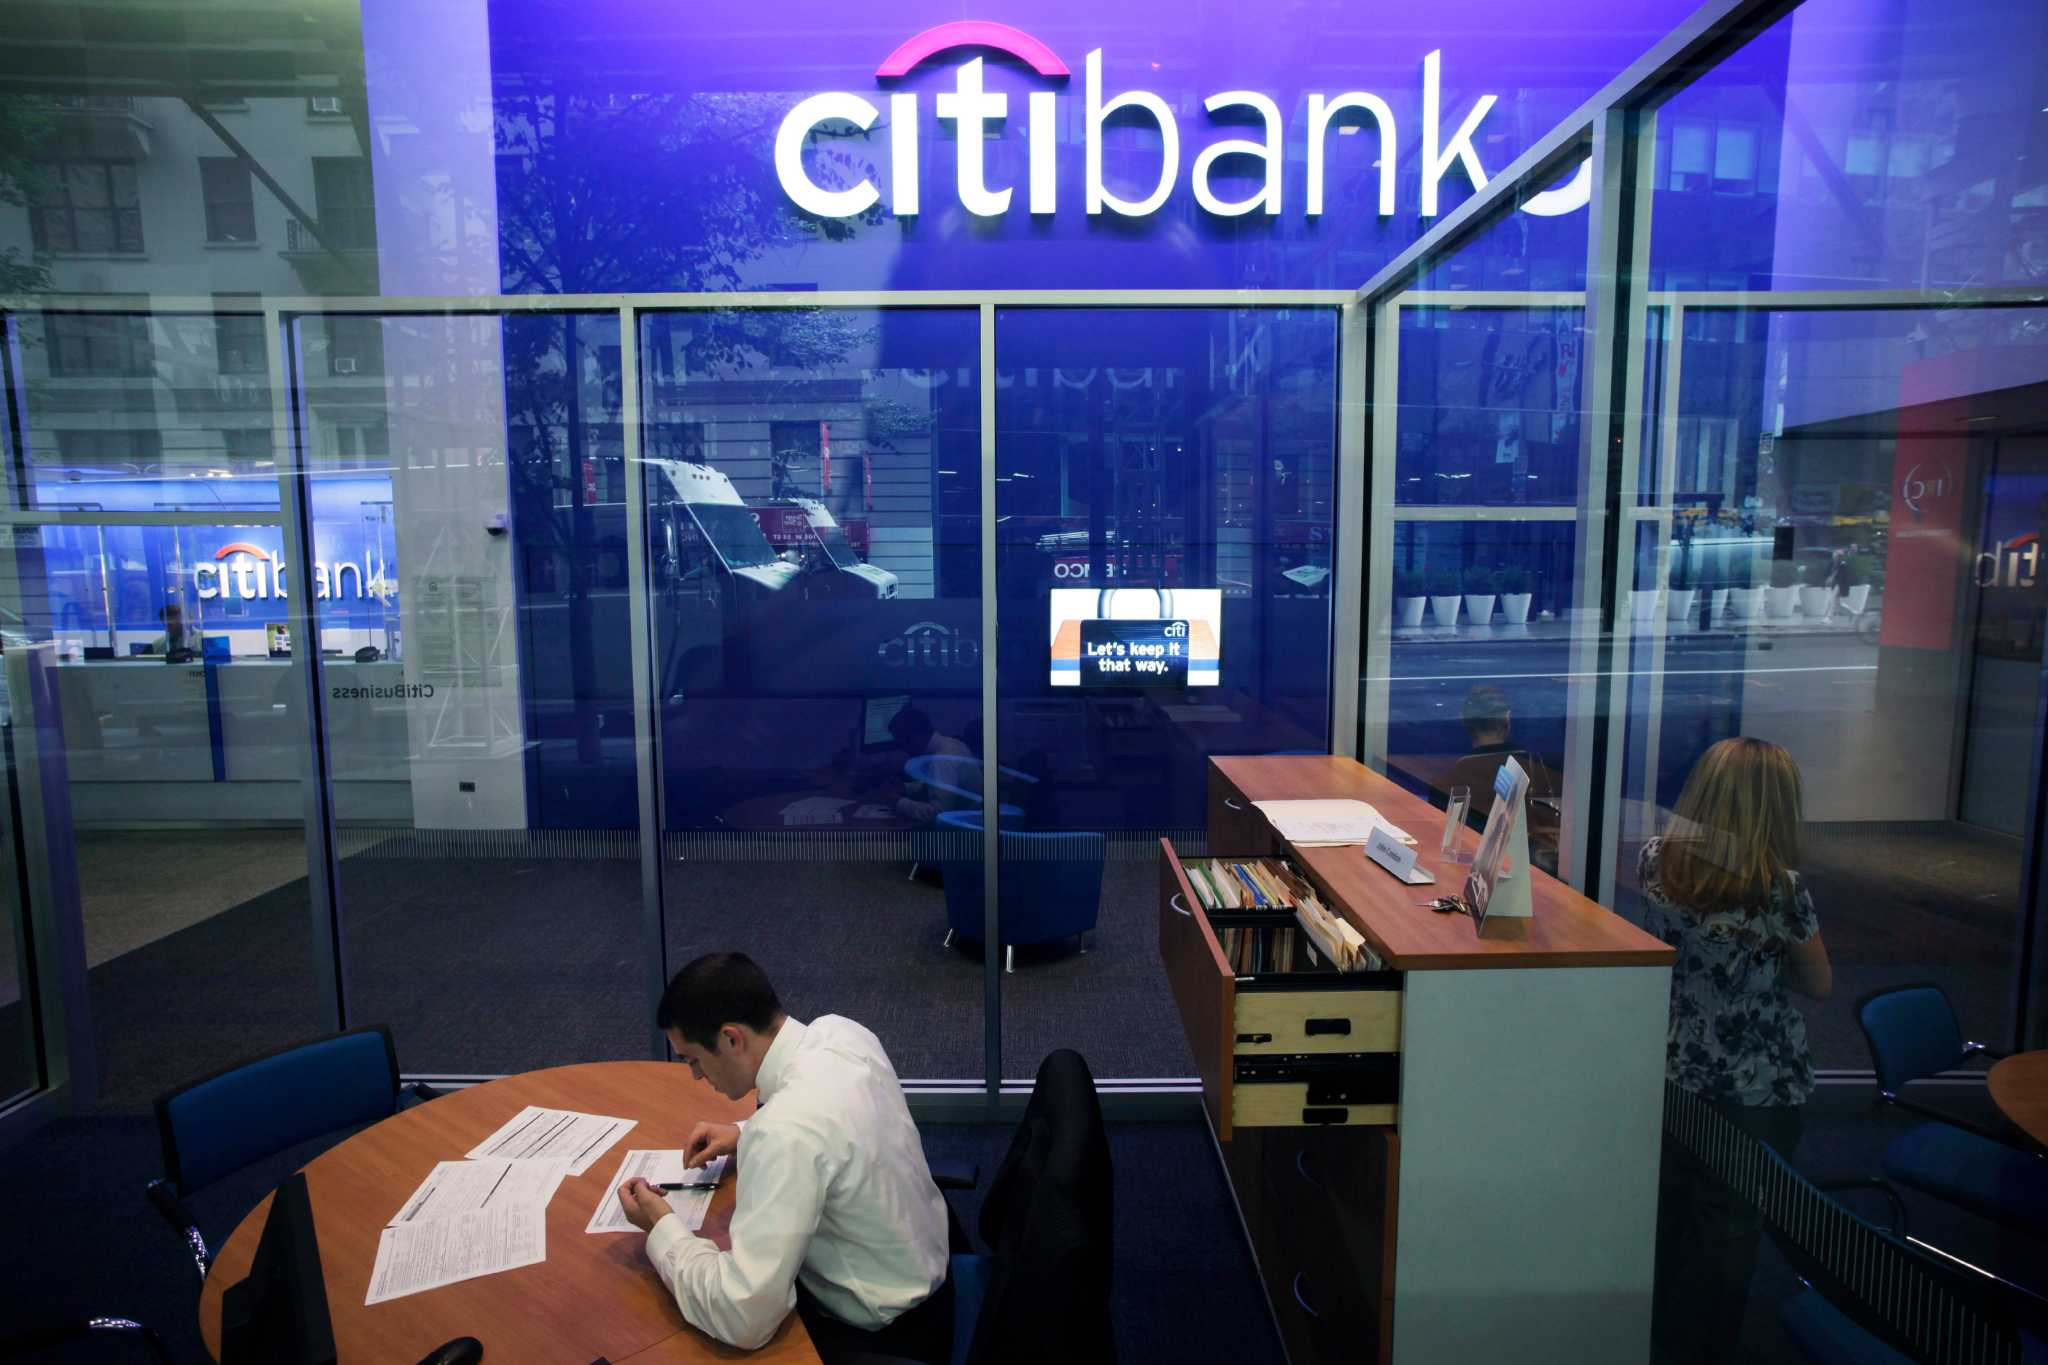 citibank-best-bank-work-invest-savings